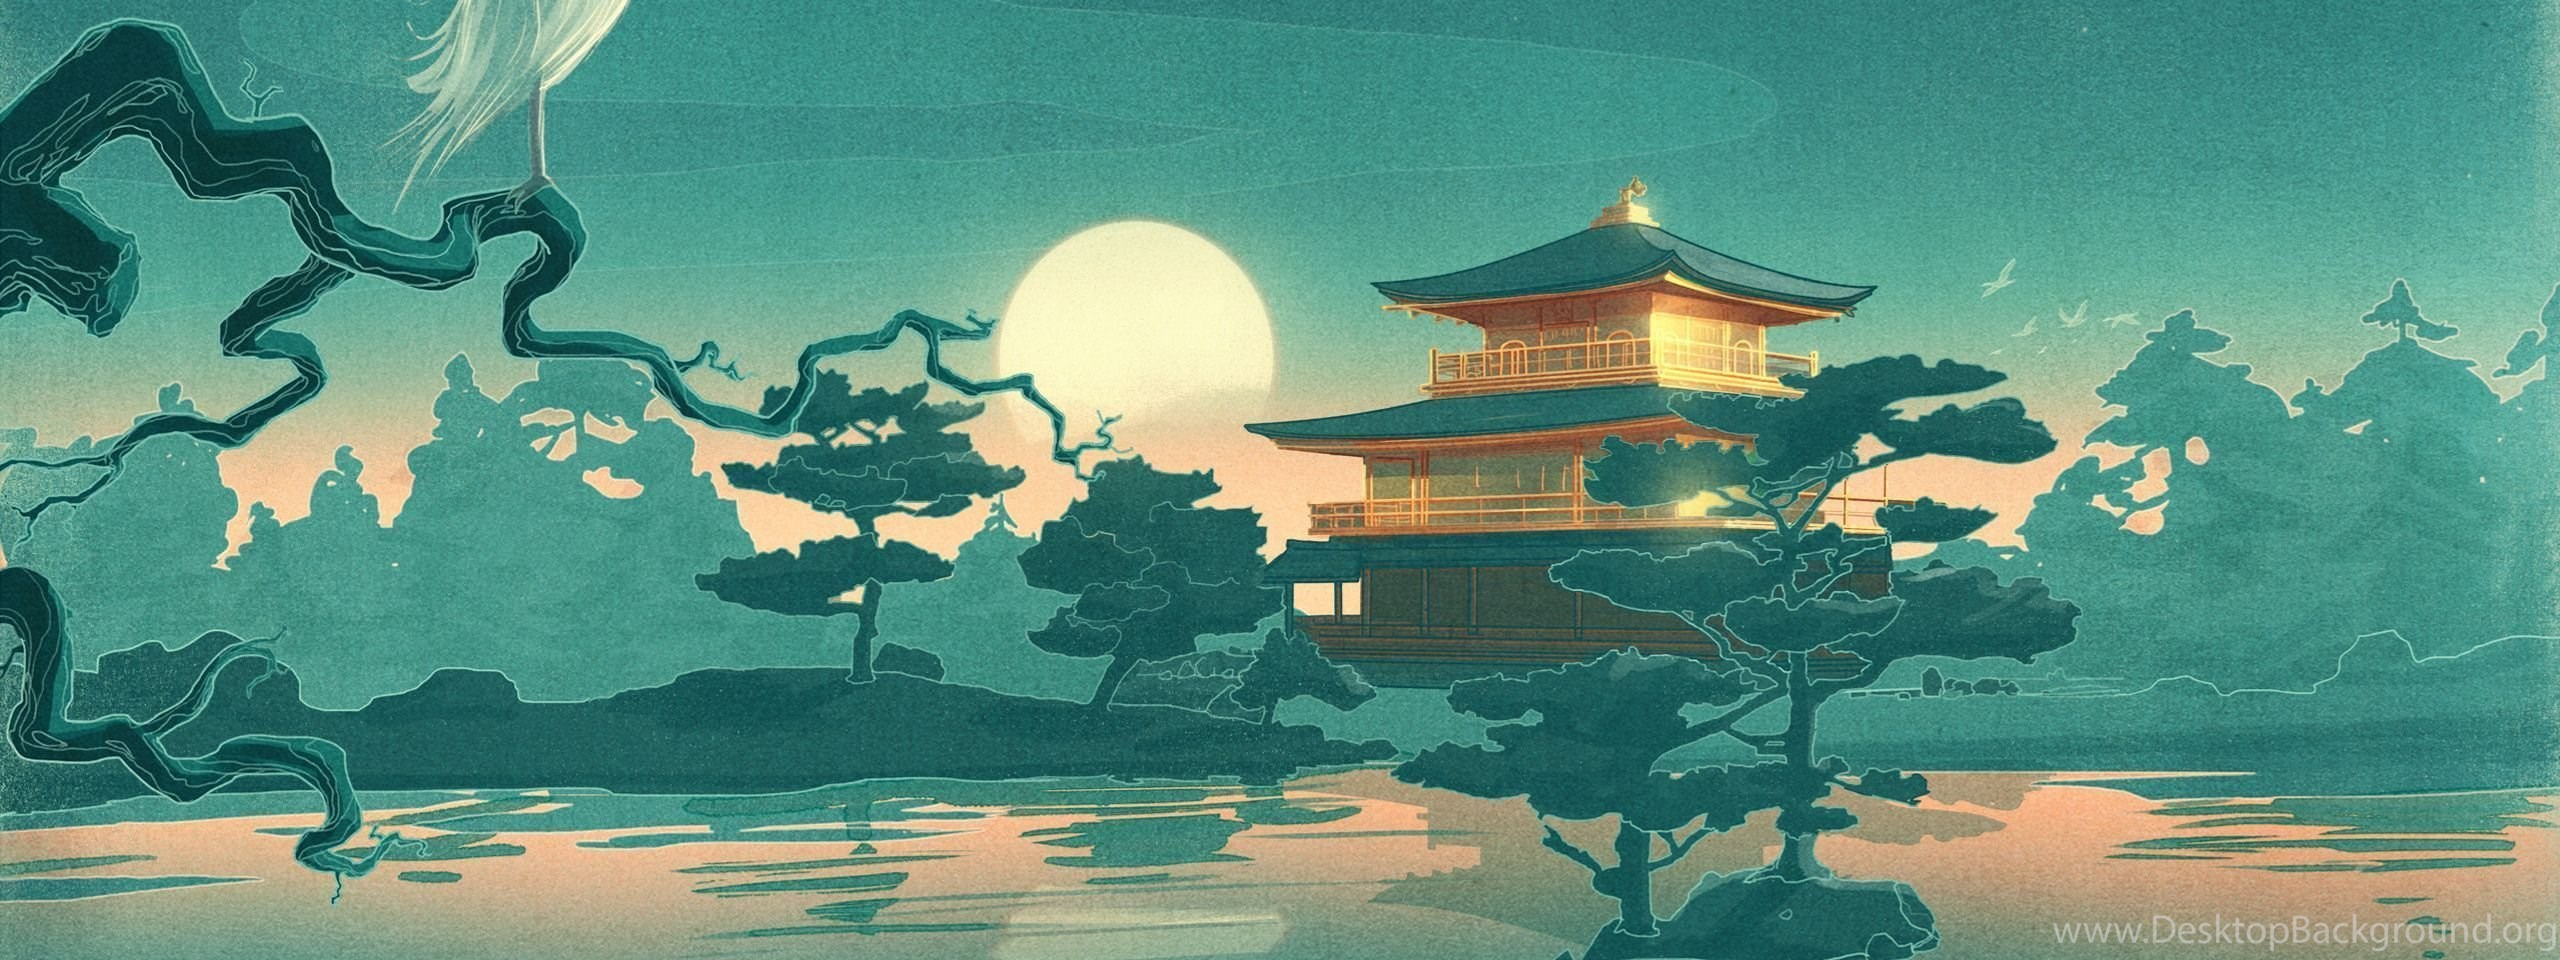 Hd Background Wallpaper 800x600: 32 Japanese HD Wallpapers Desktop Background